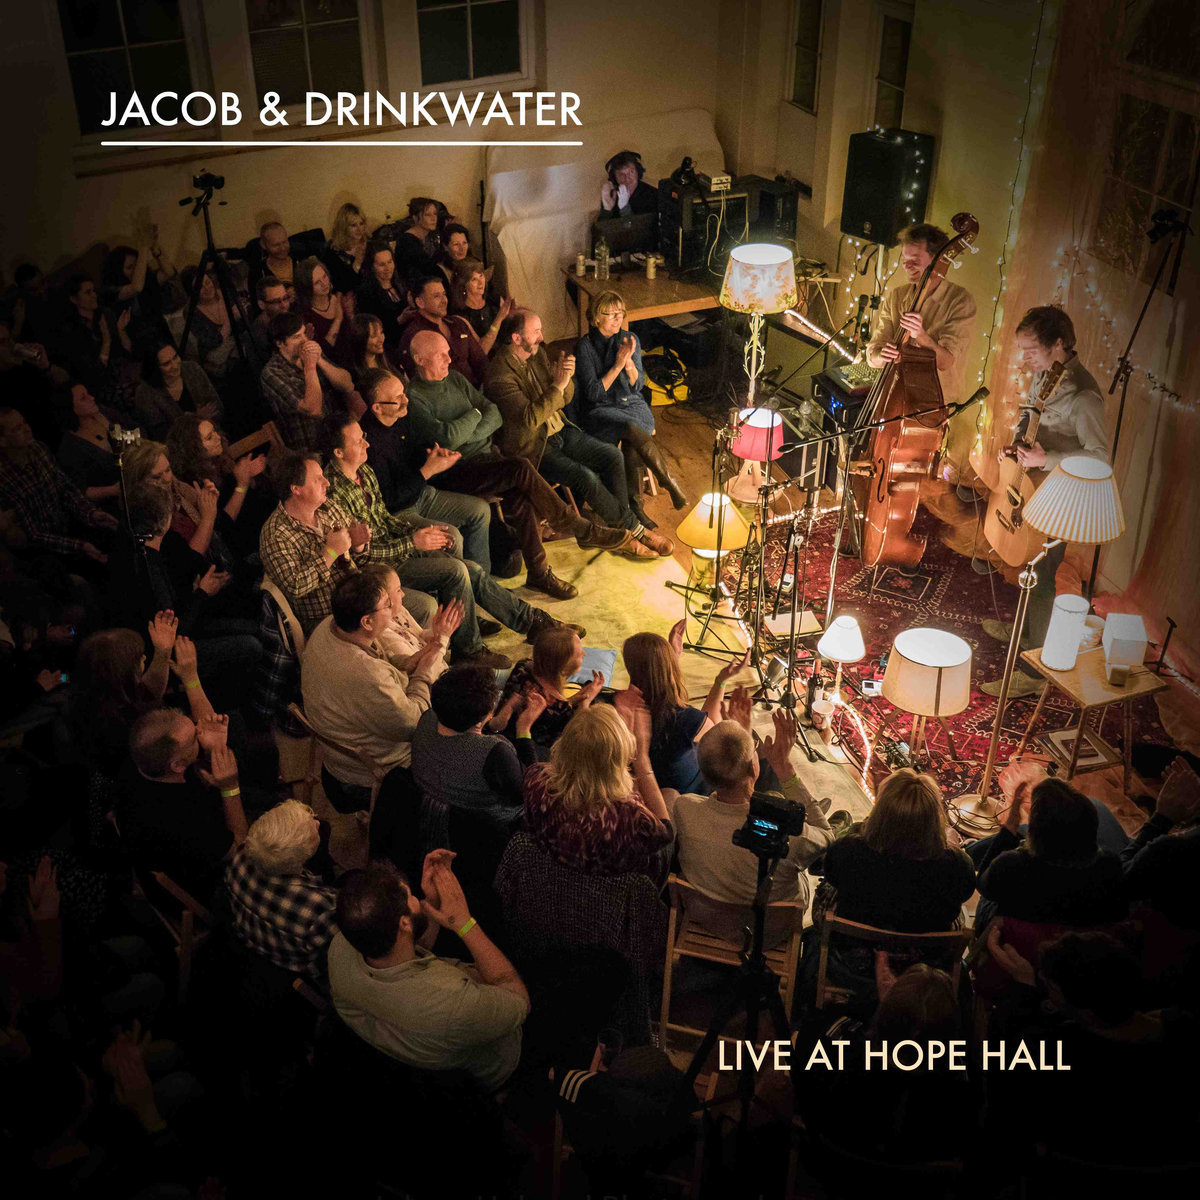 Live at Hope Hall - Jacob & Drinkwater   Lukas Drinkwater